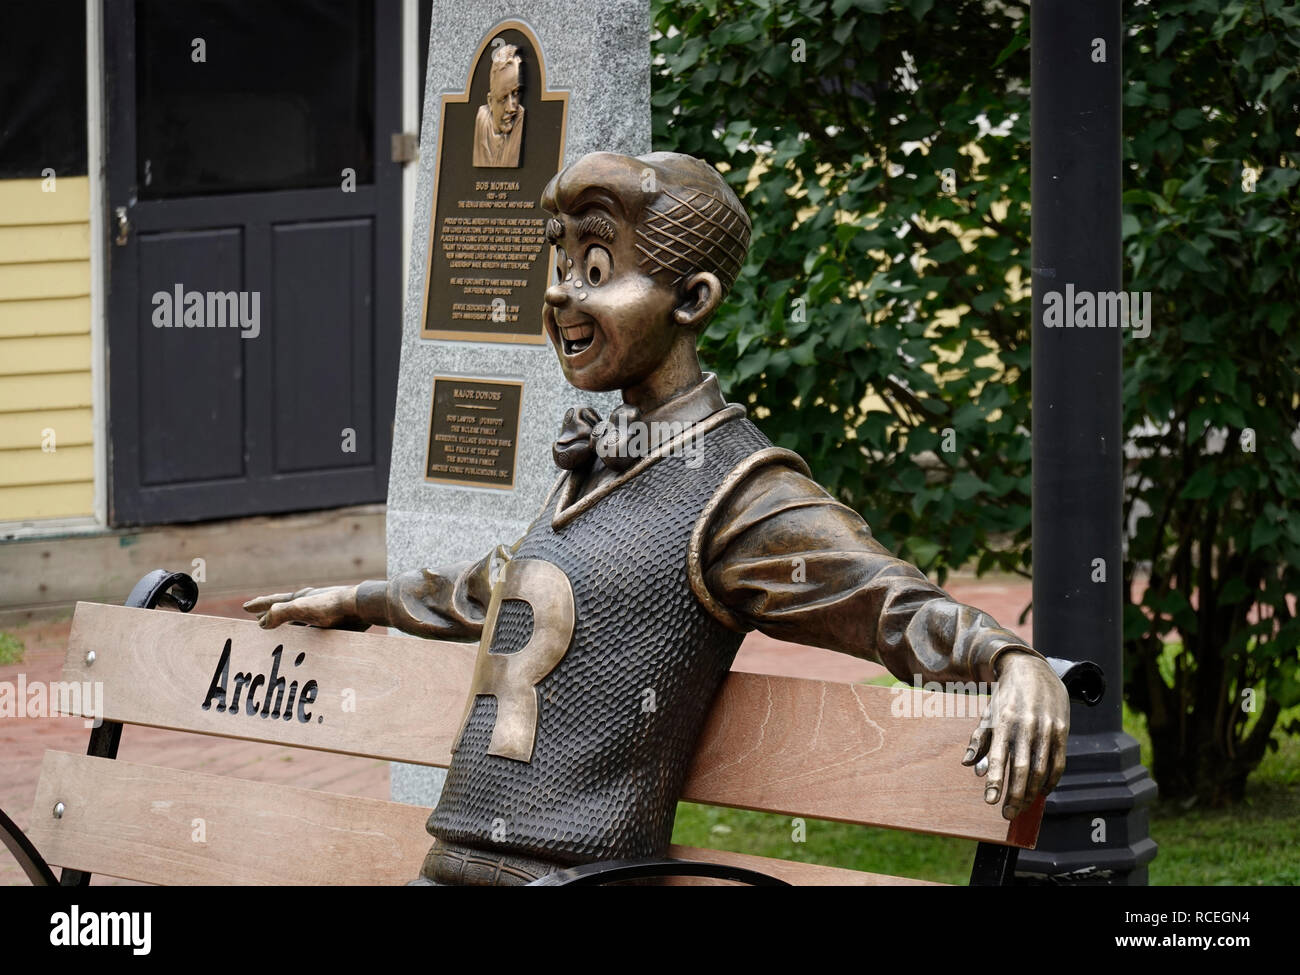 Archie cartoon character sculpture in Meredith New Hampshire Stock Photo